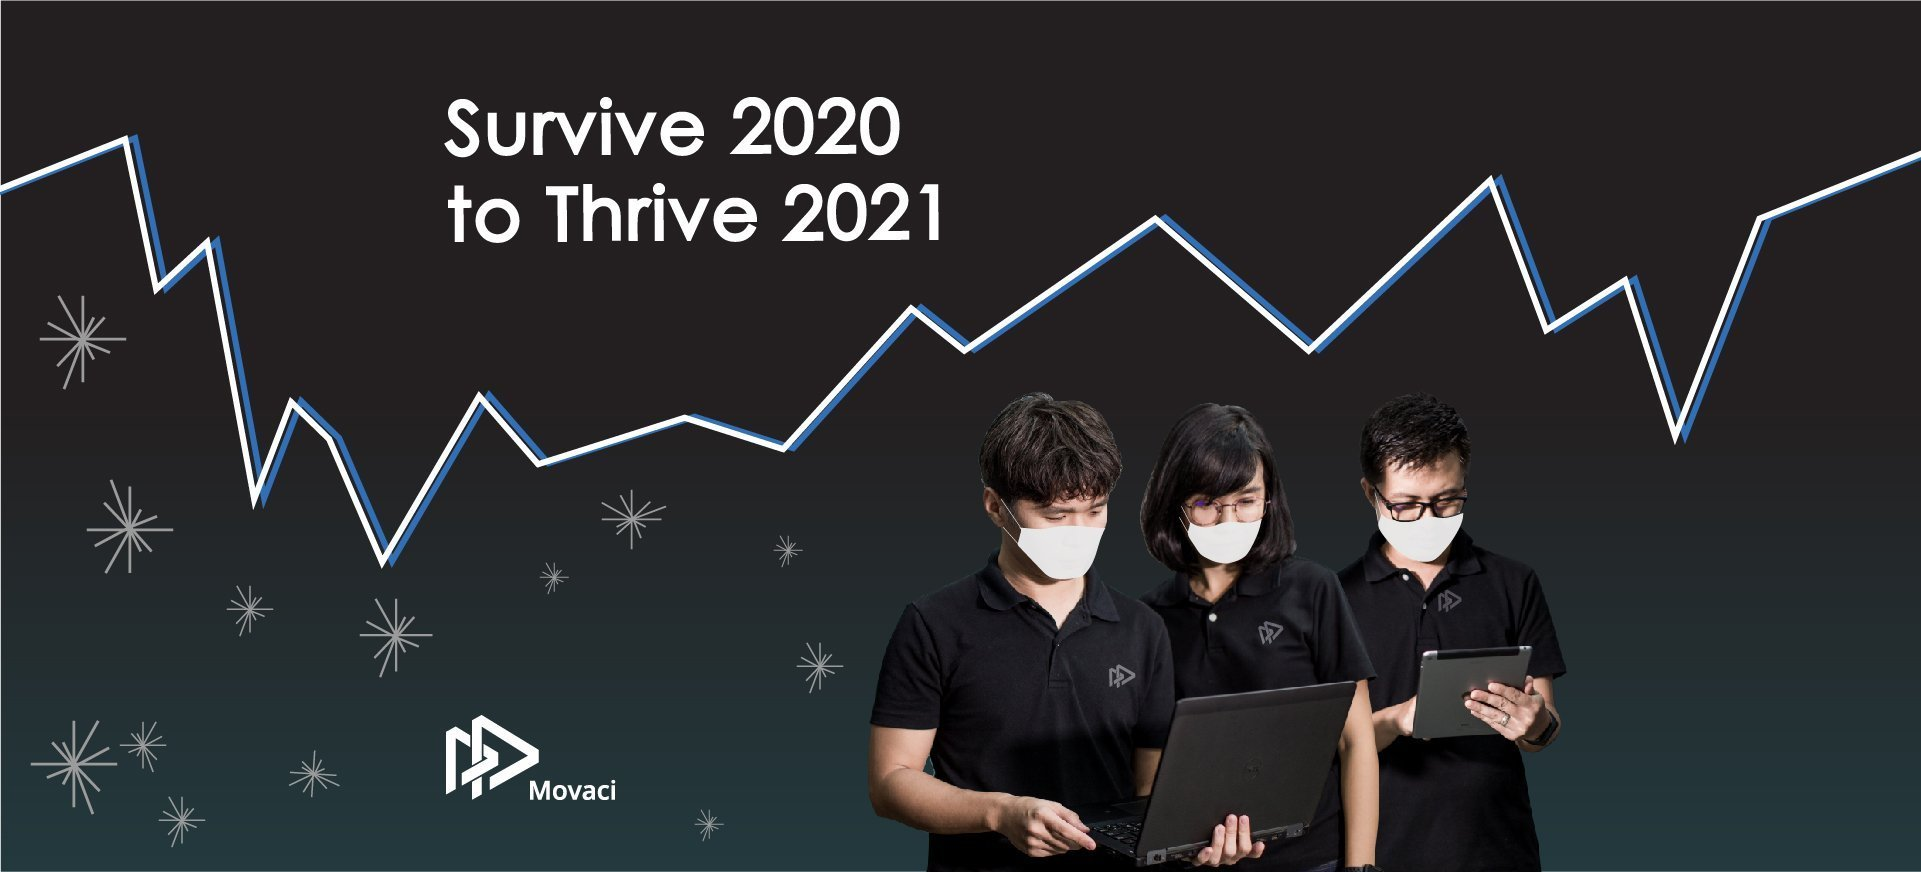 Survive 2020 to Thrive 2021 1